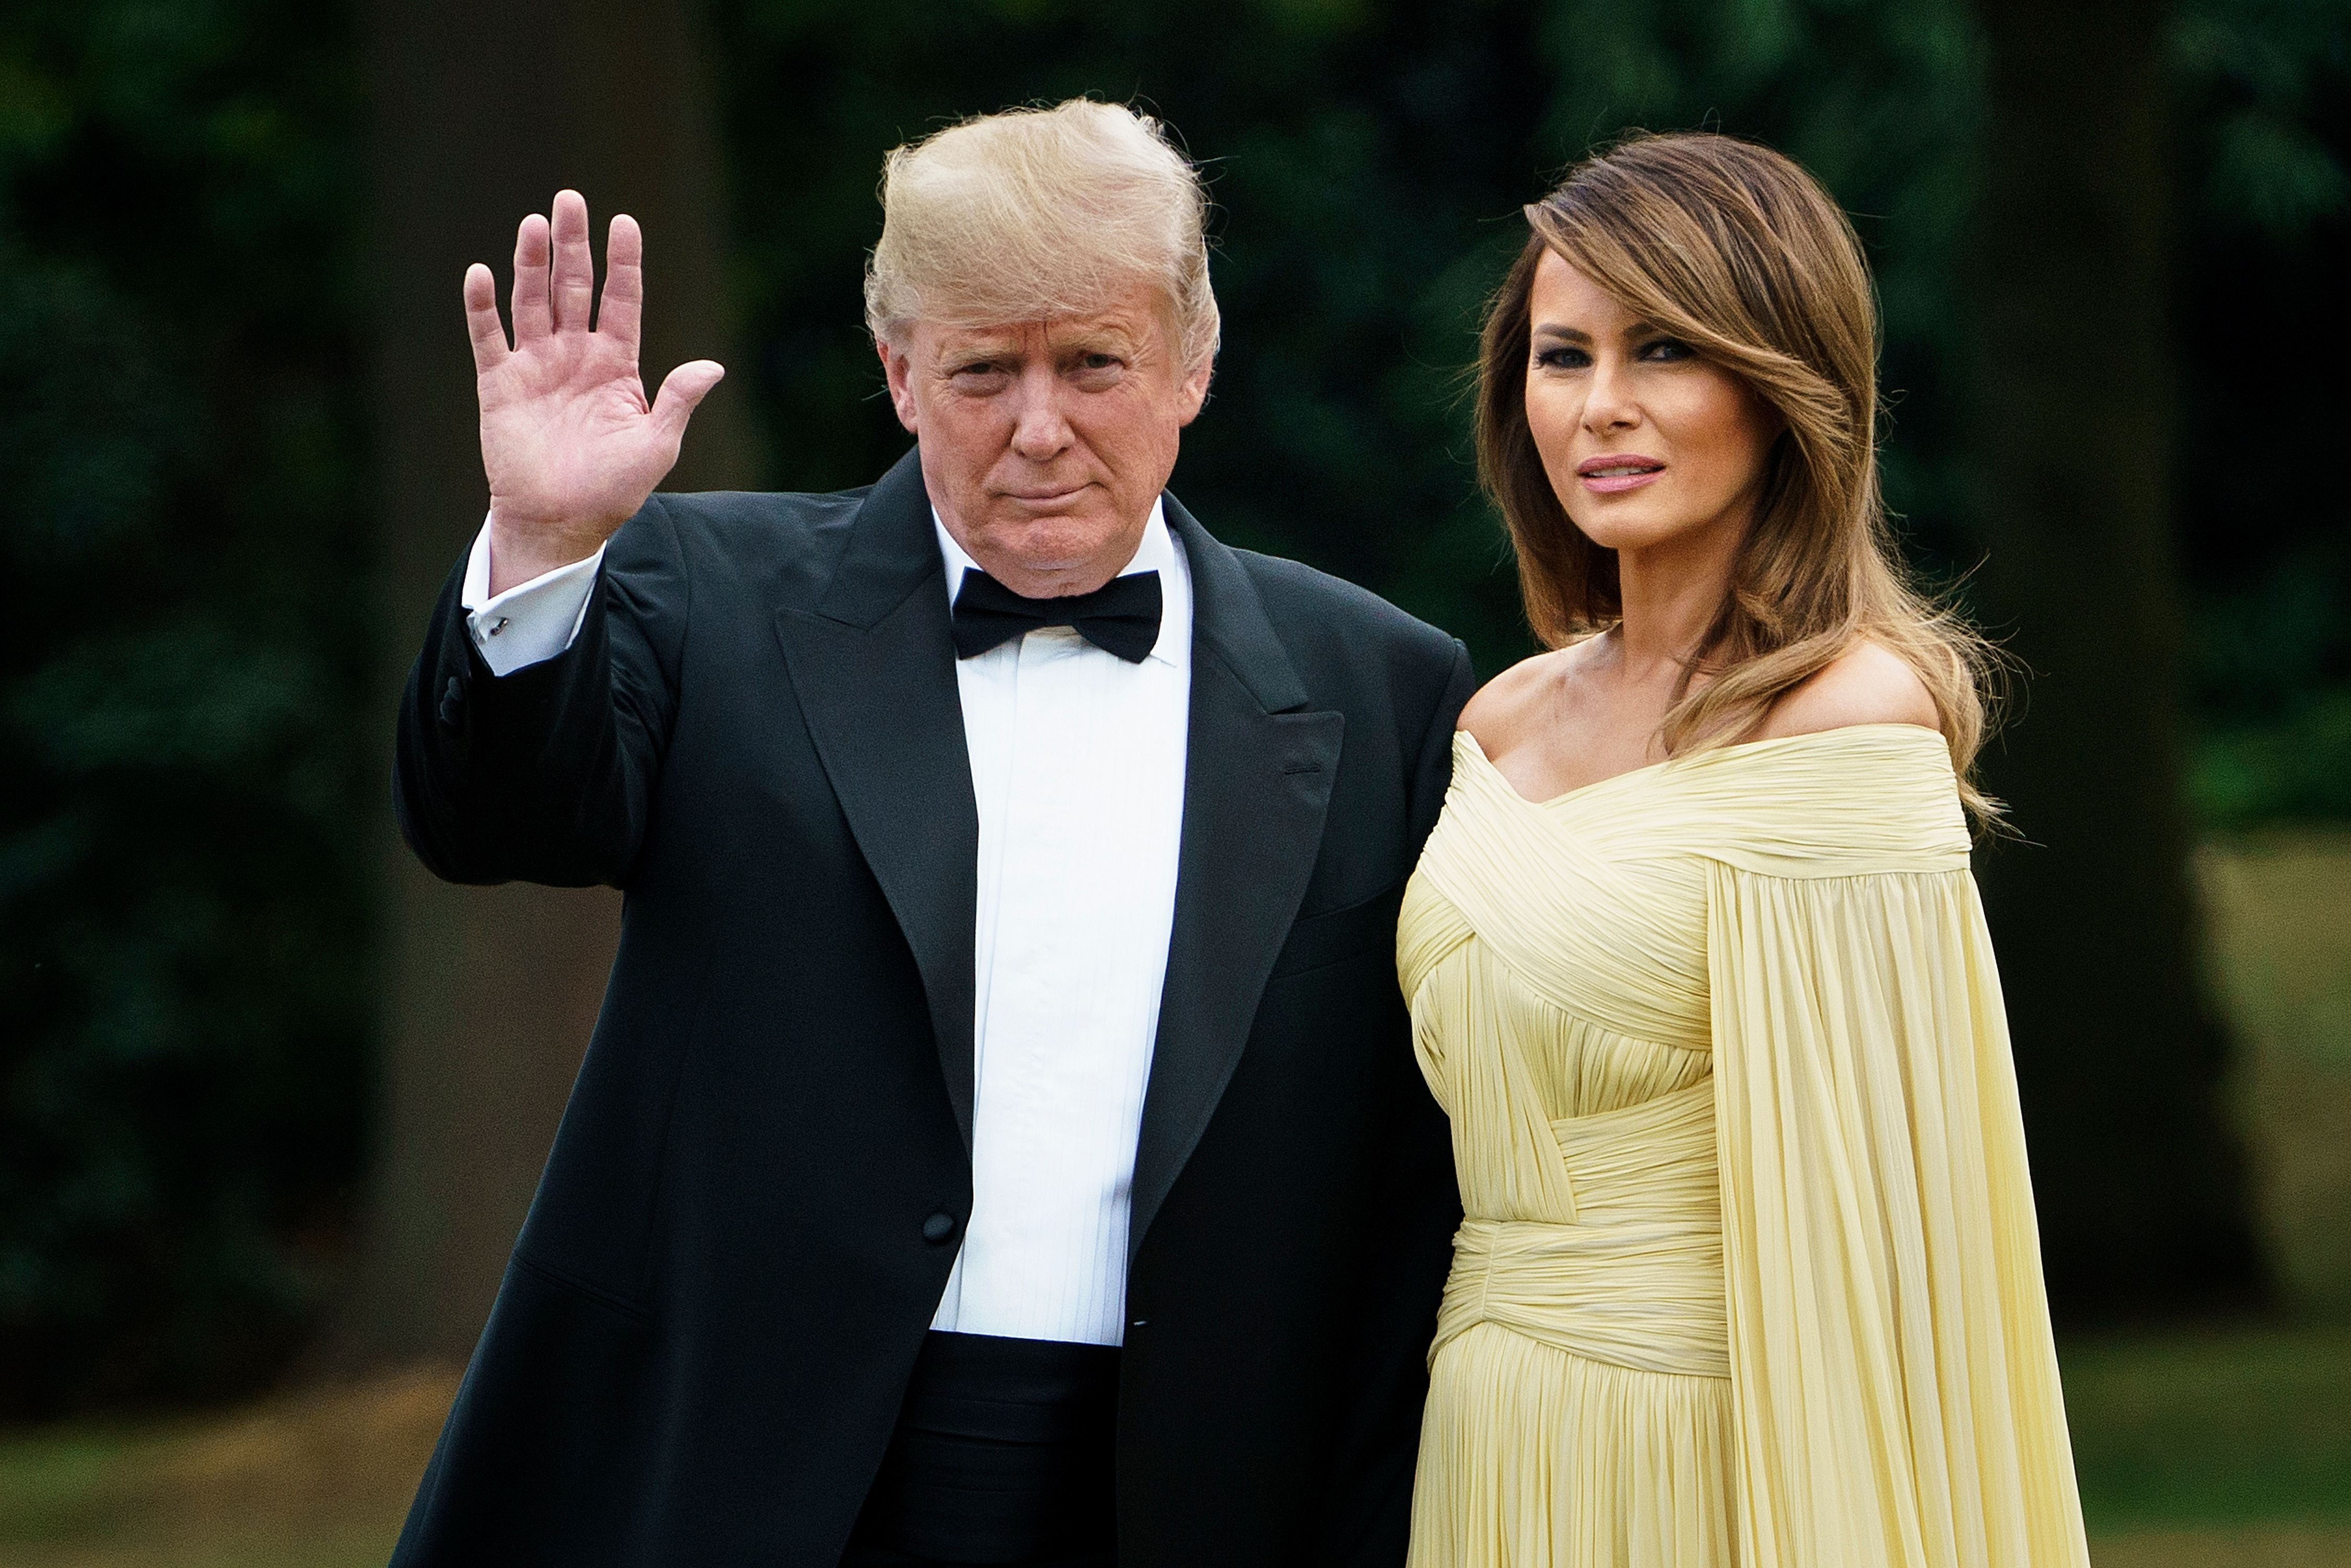 Melania Trump S Yellow Caped Gown Draws Comparisons To A Disney Princess